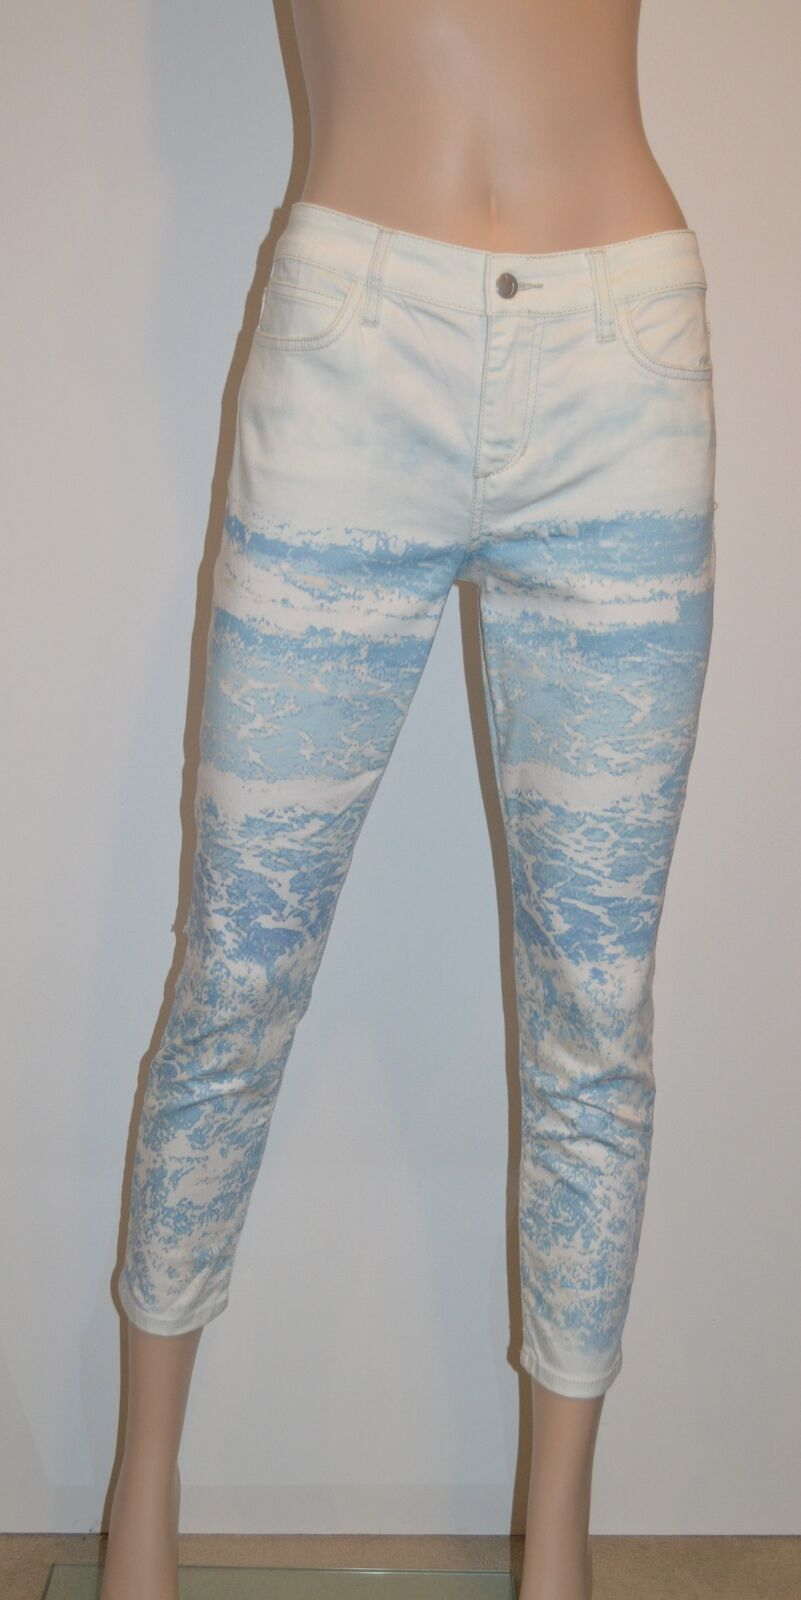 New Joe's Jeans Skinny Crop Ocean Cropped sz 24 Capri's Light Wash